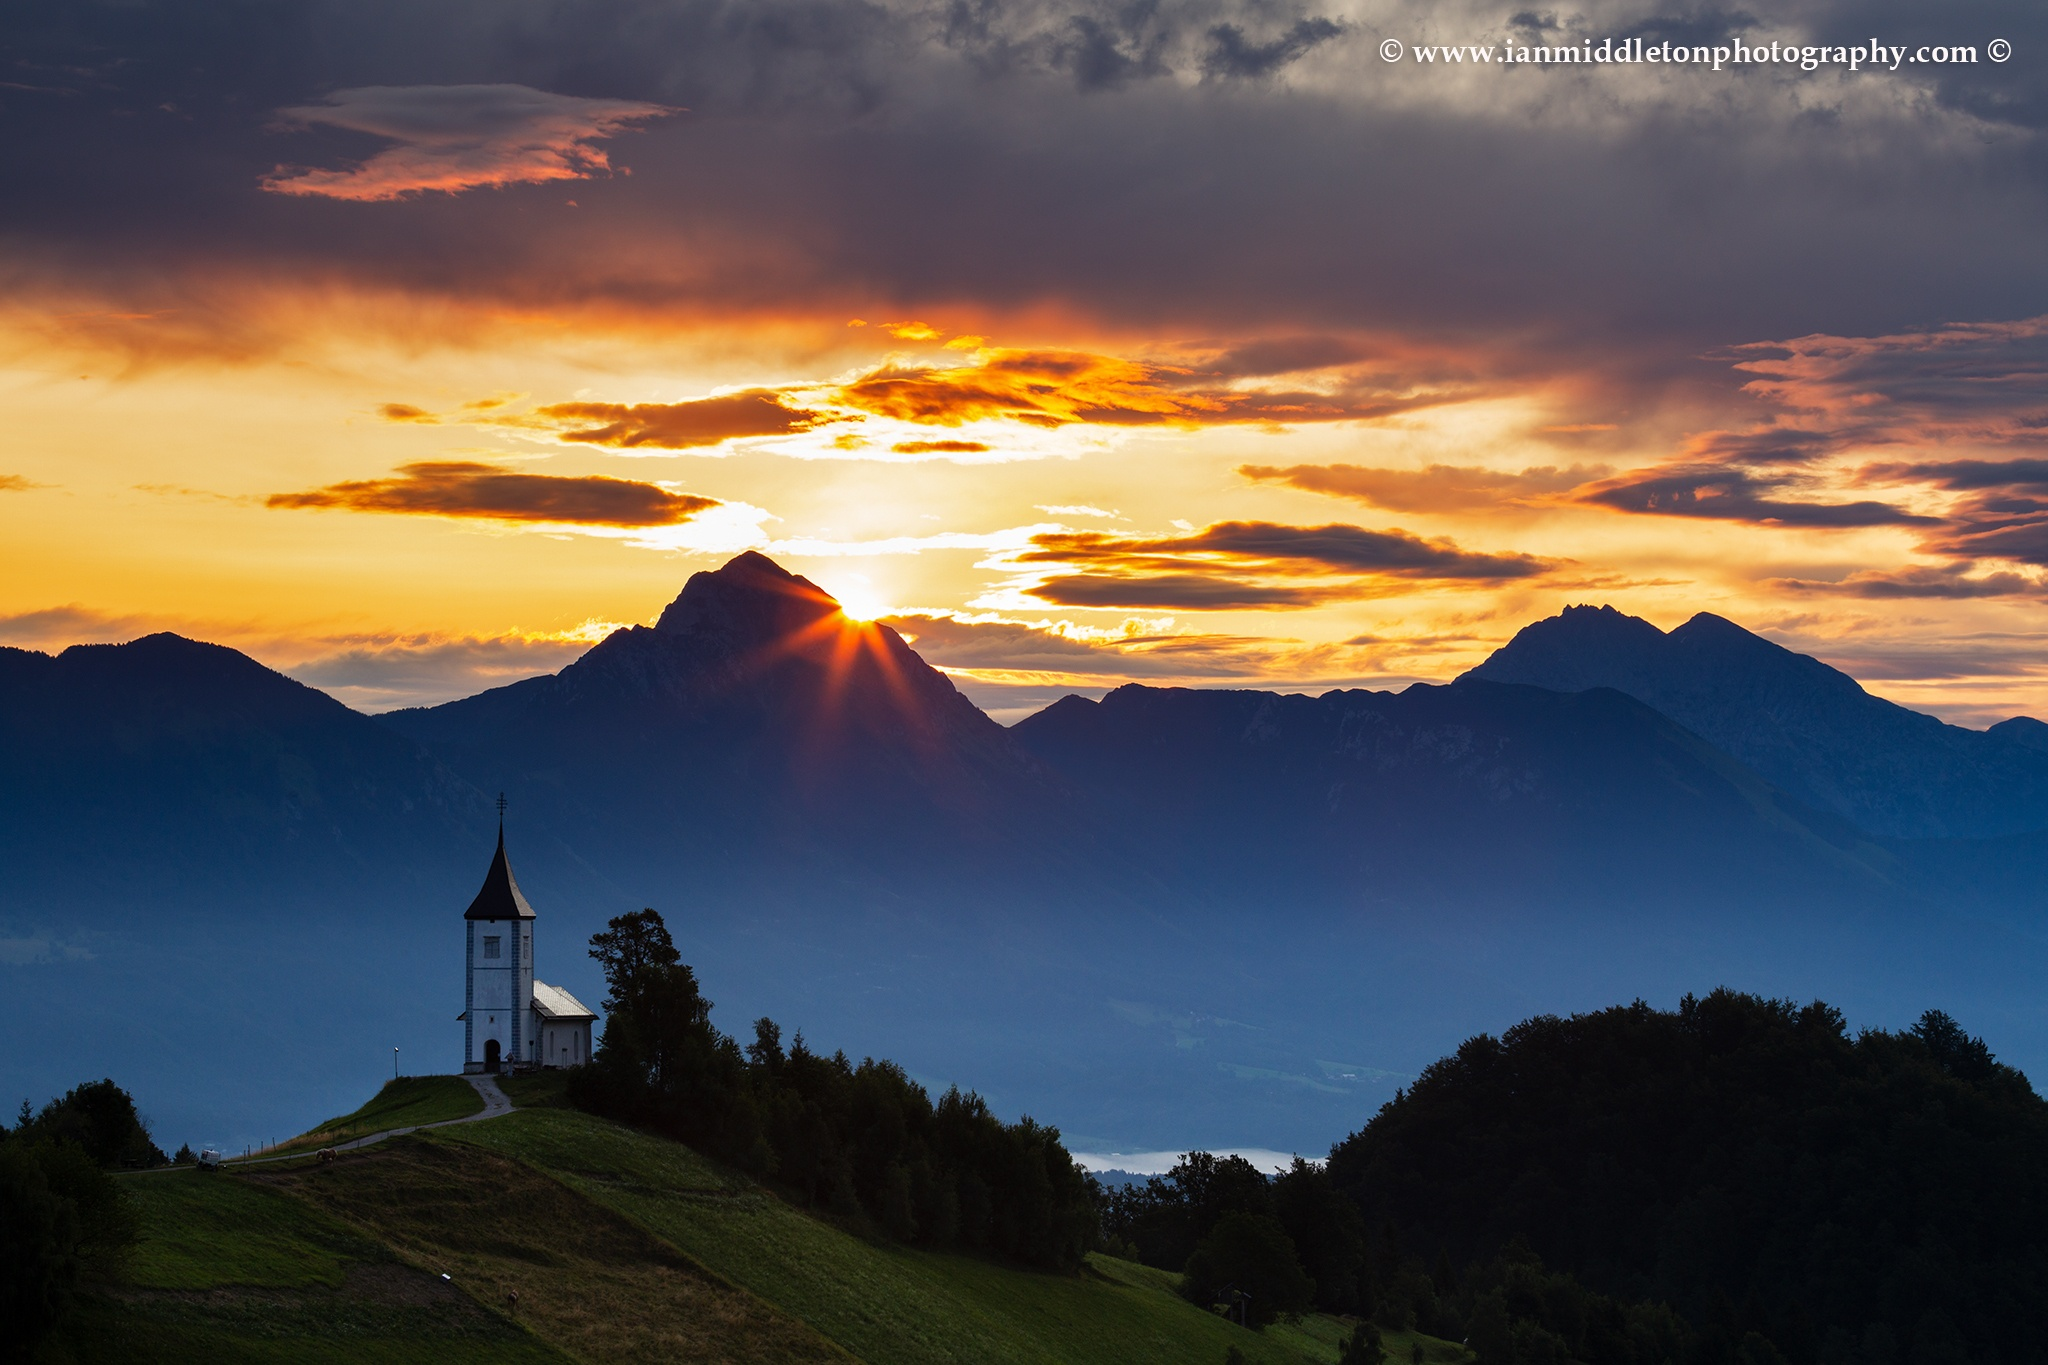 Sunrise over Storzic at Jamnik church, Slovenia.